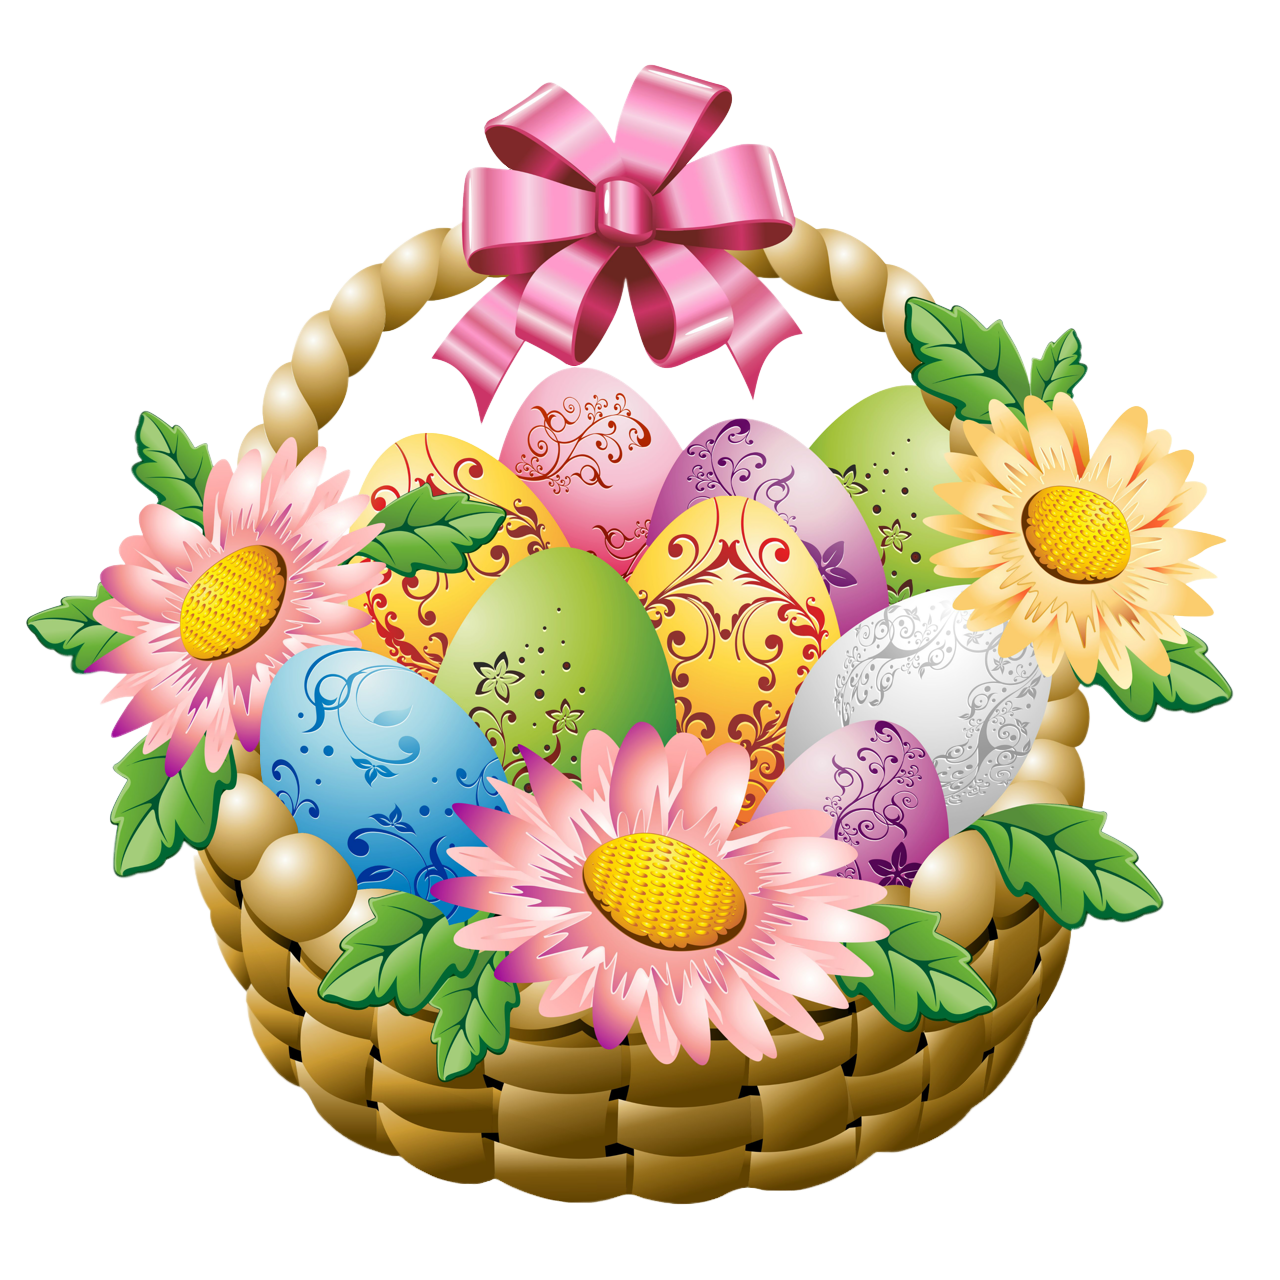 1280x1280 Easter Basket With Easter Eggs And Flowers Png Pictureu200b Gallery